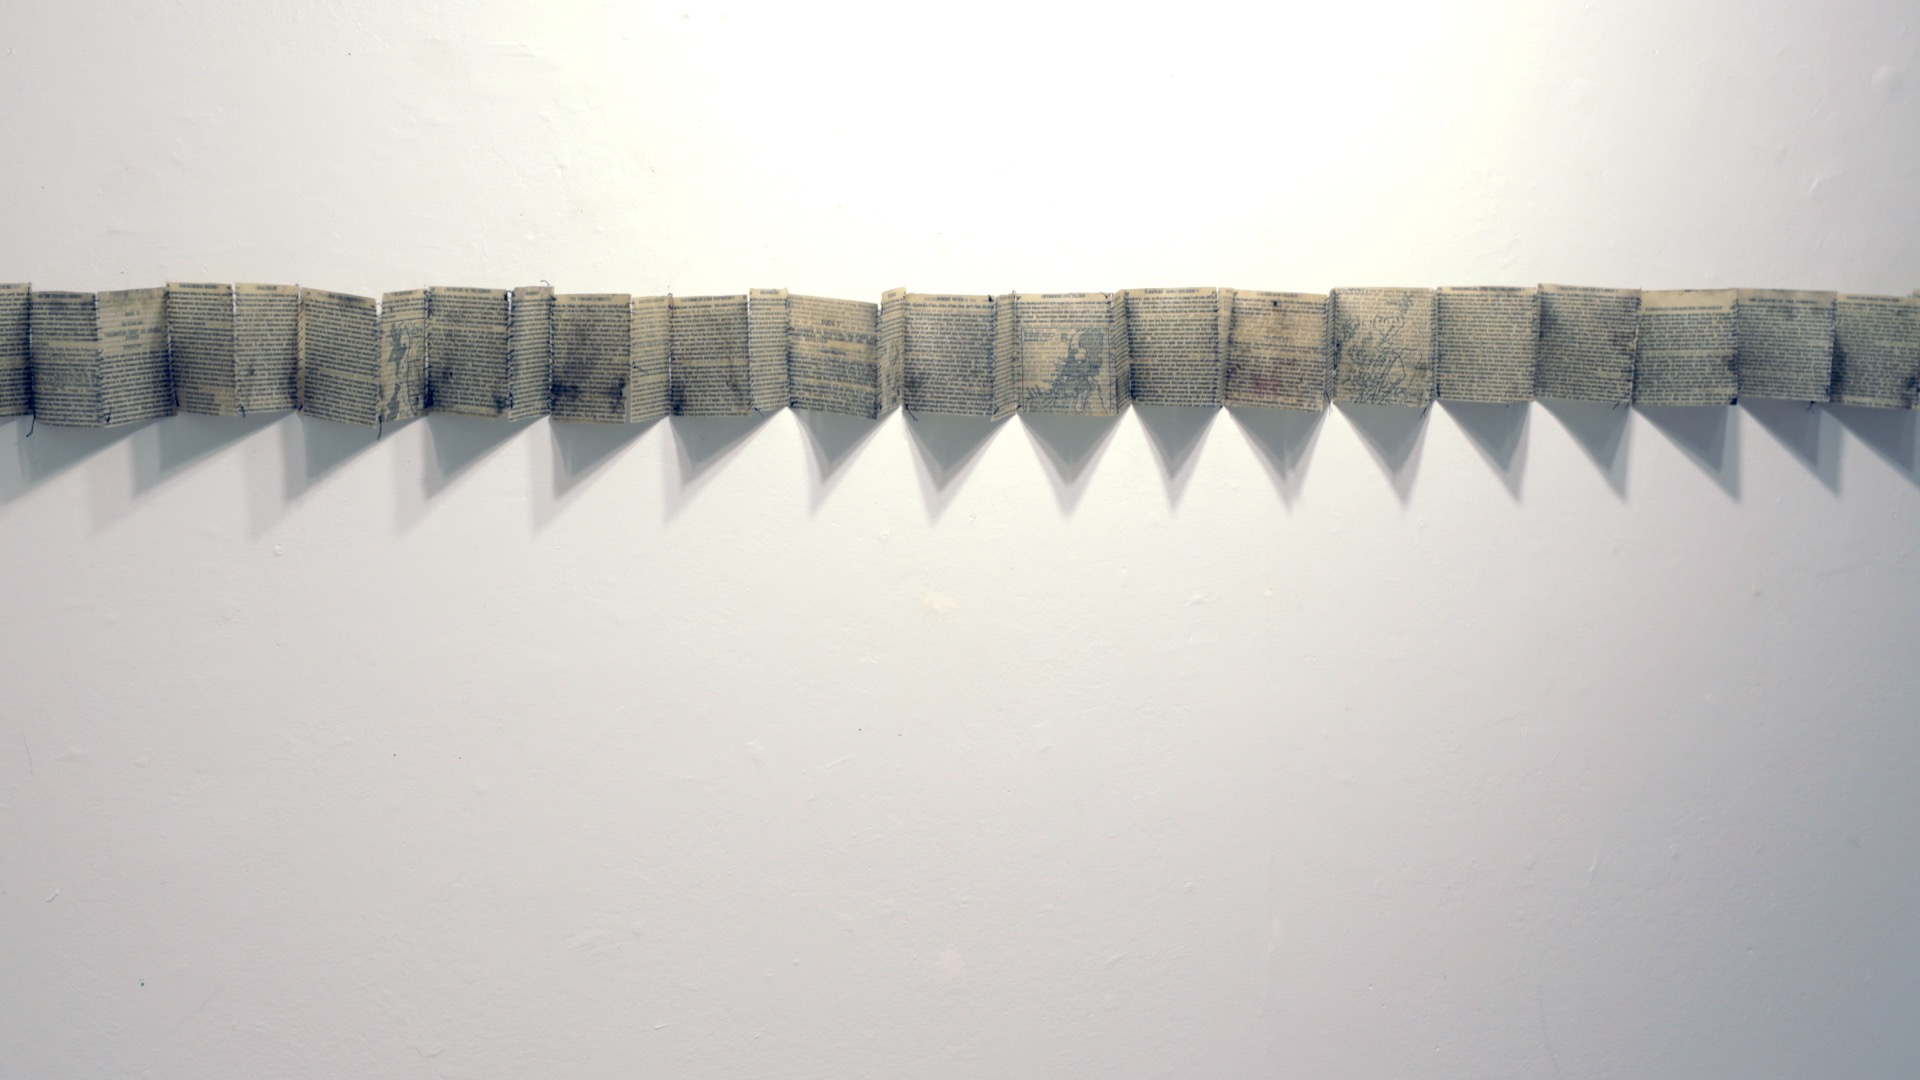 "History of England stitched and folded  / Book pages, beeswax, thread / 10 cm (4"") x variable (this installation 250 cm [9'] ) / 2018"